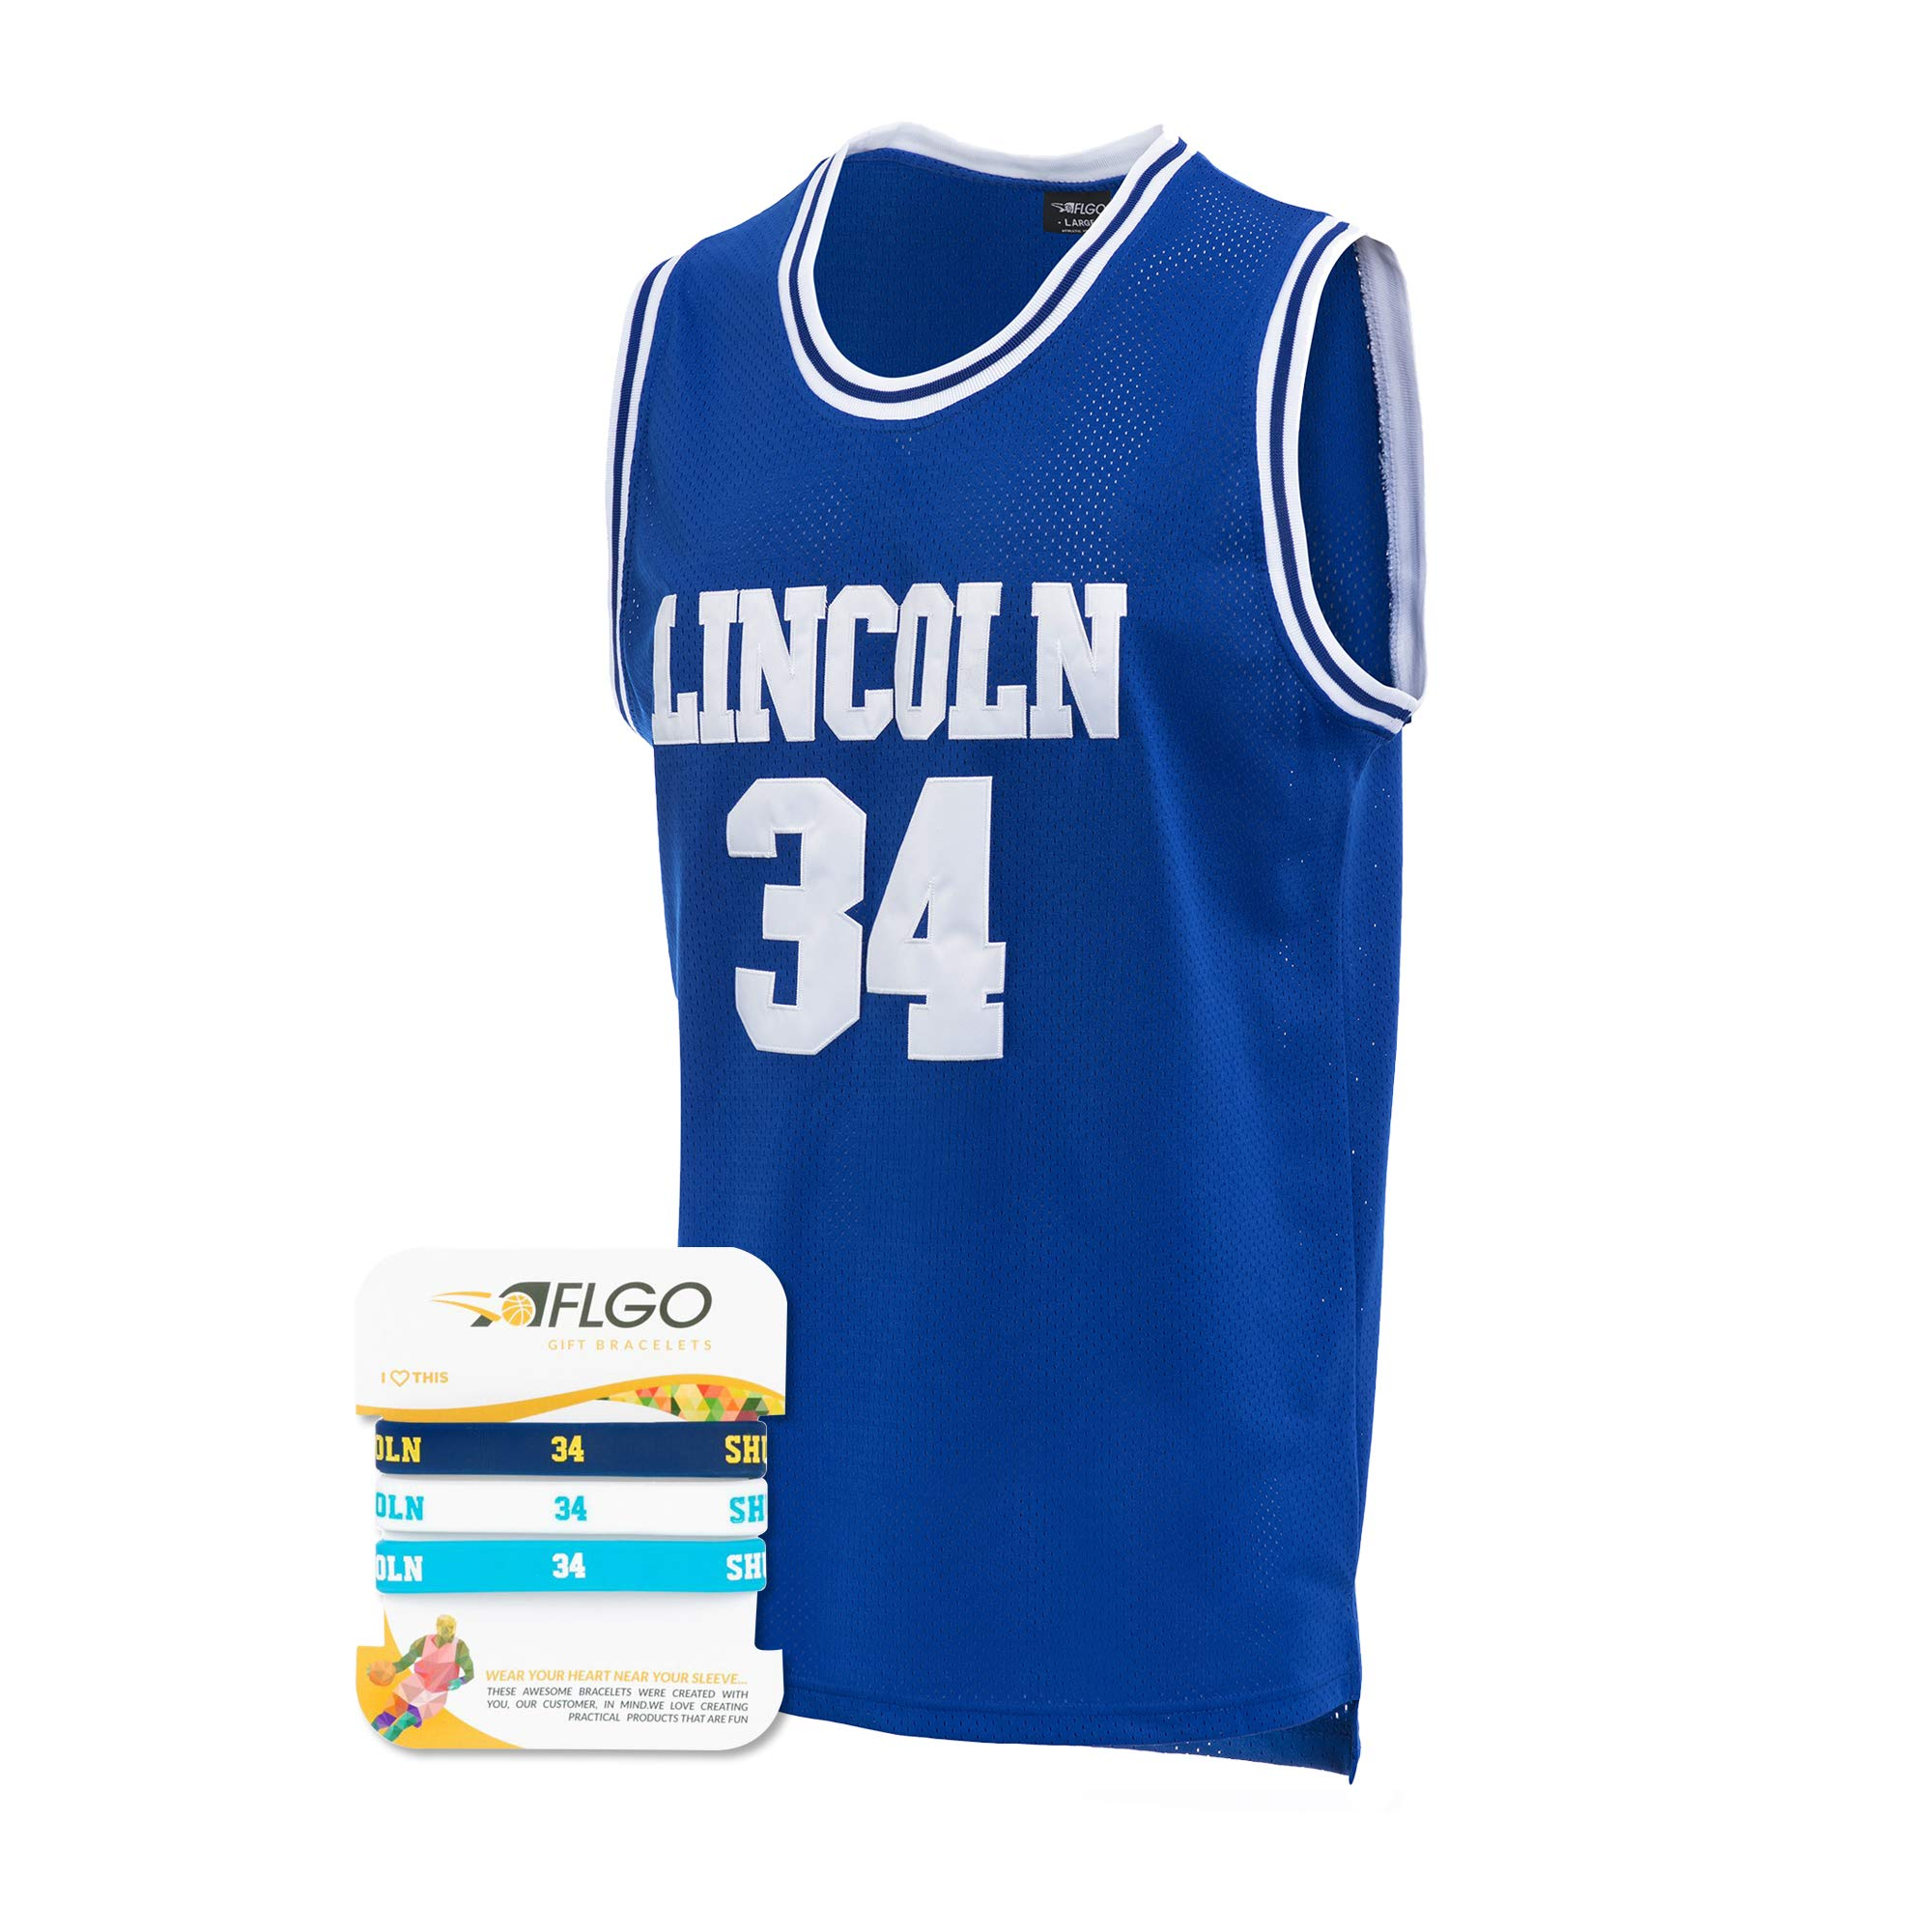 dd78778cbf226 AFLGO Jesus Shuttlesworth  34 Lincoln High School Basketball Jersey S-XXXL  Blue